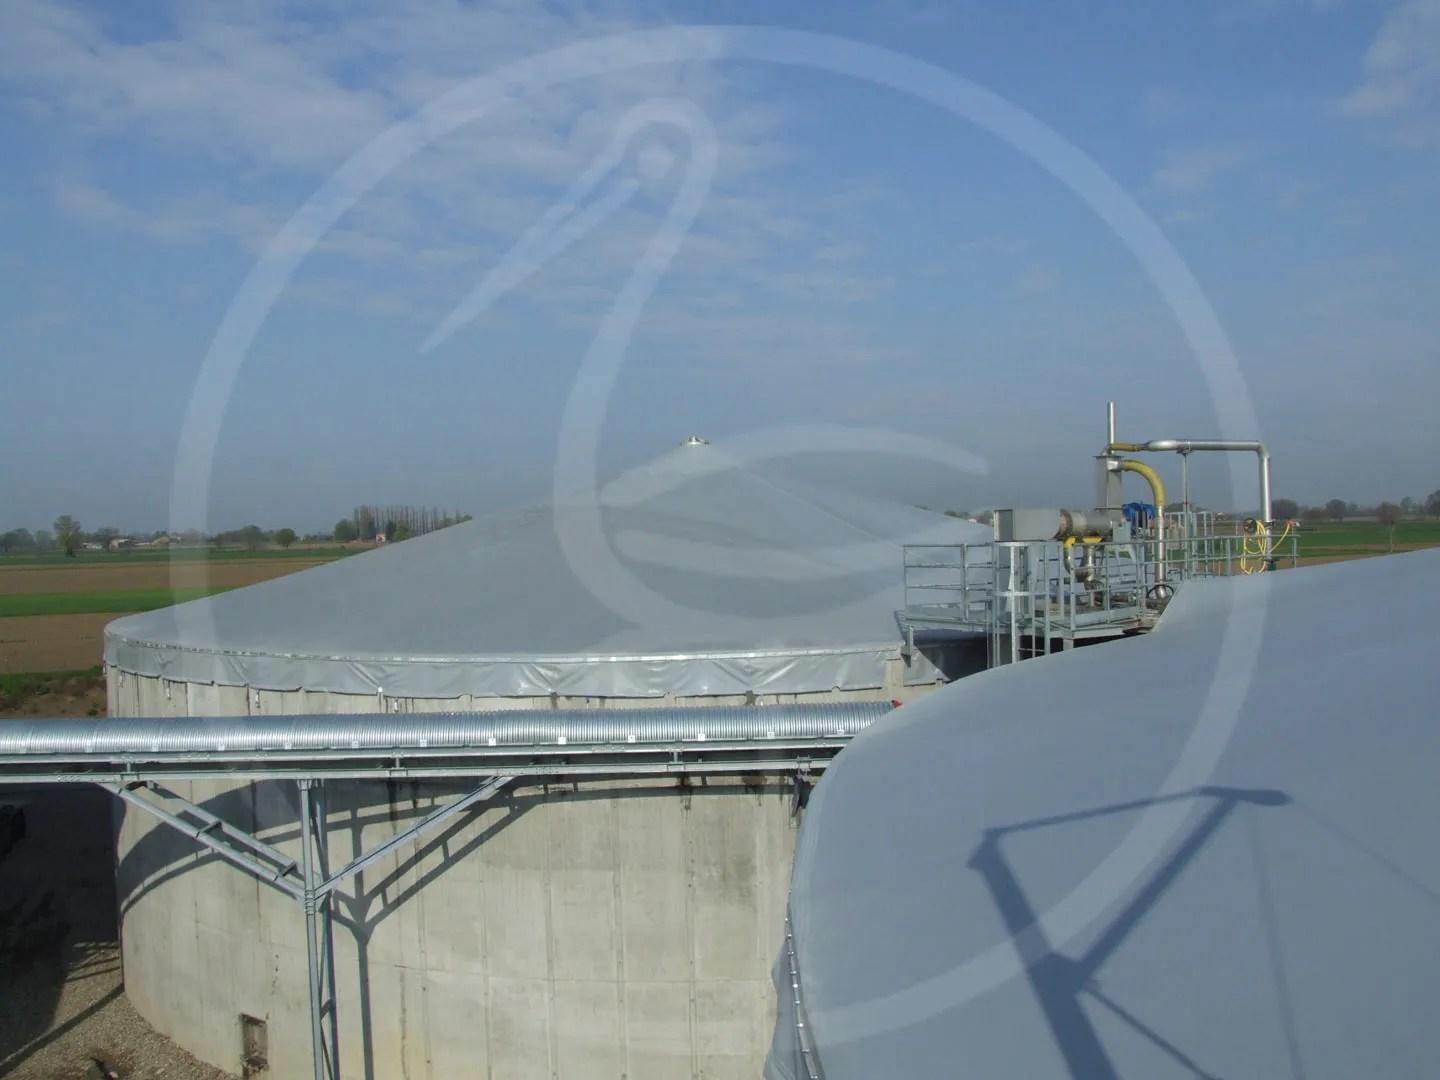 Covering for Biogas - Fidenza